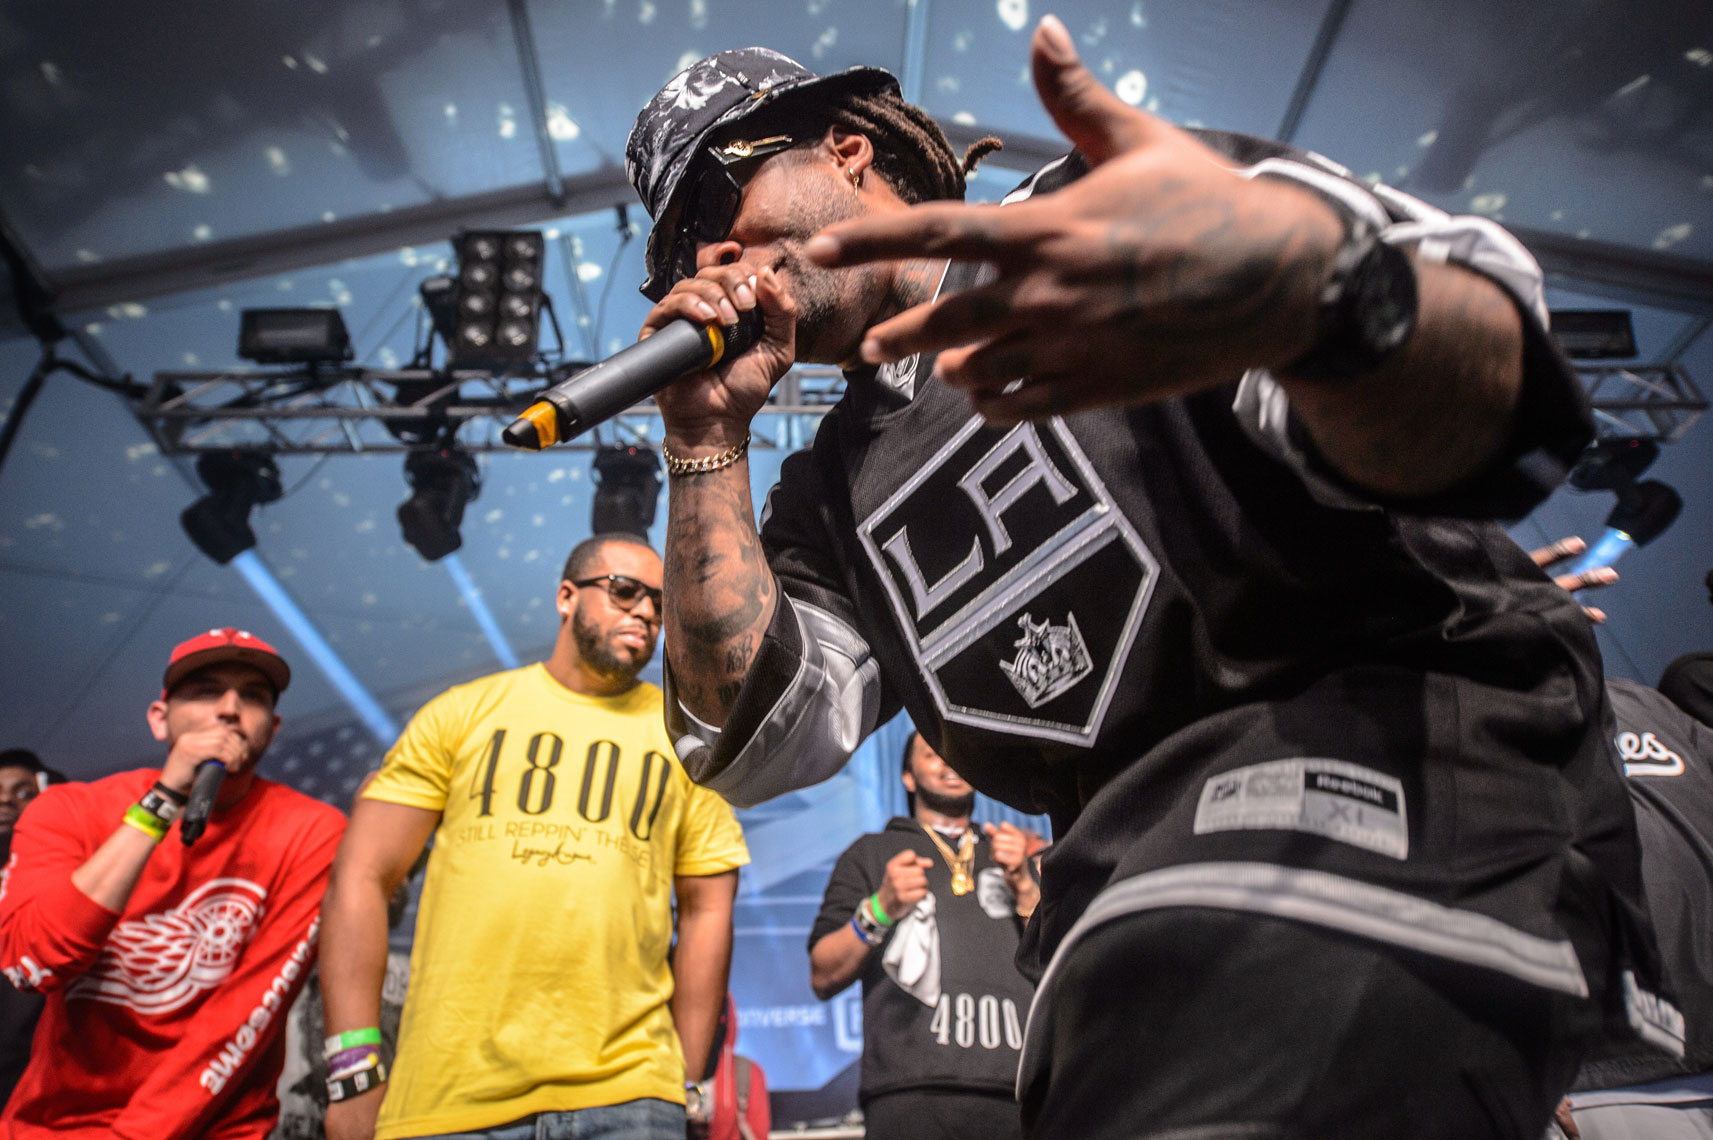 Taylor-Gang-and-Wiz-Khalifa-perform-at-the-FADER-Fort-during-SXSW-2014-5